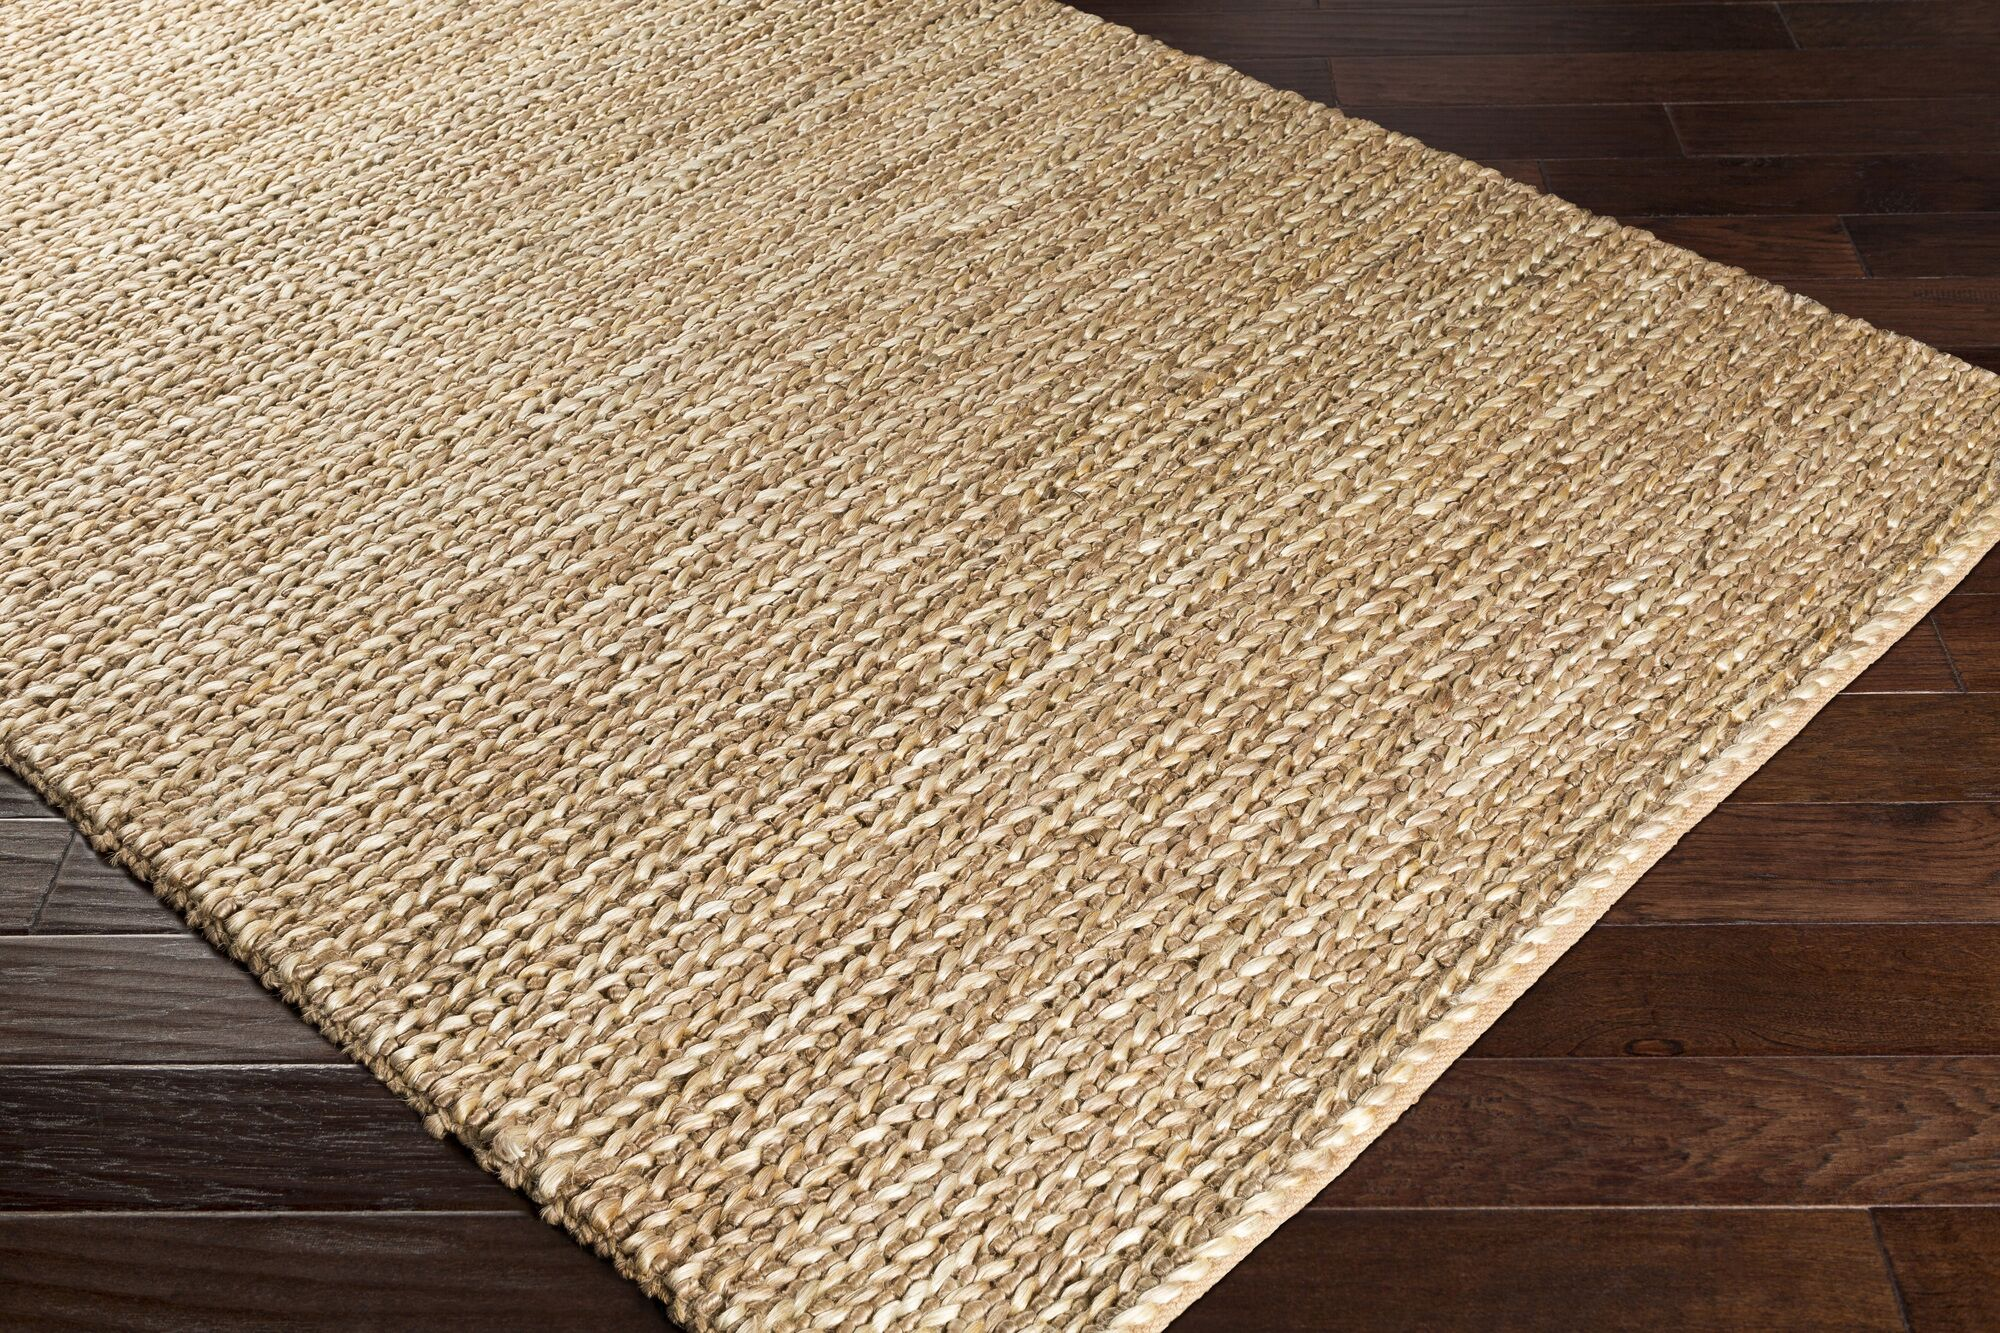 Blythen Hand-Woven Tan/Butter Area Rug Rug Size: Rectangle 8' x 10'